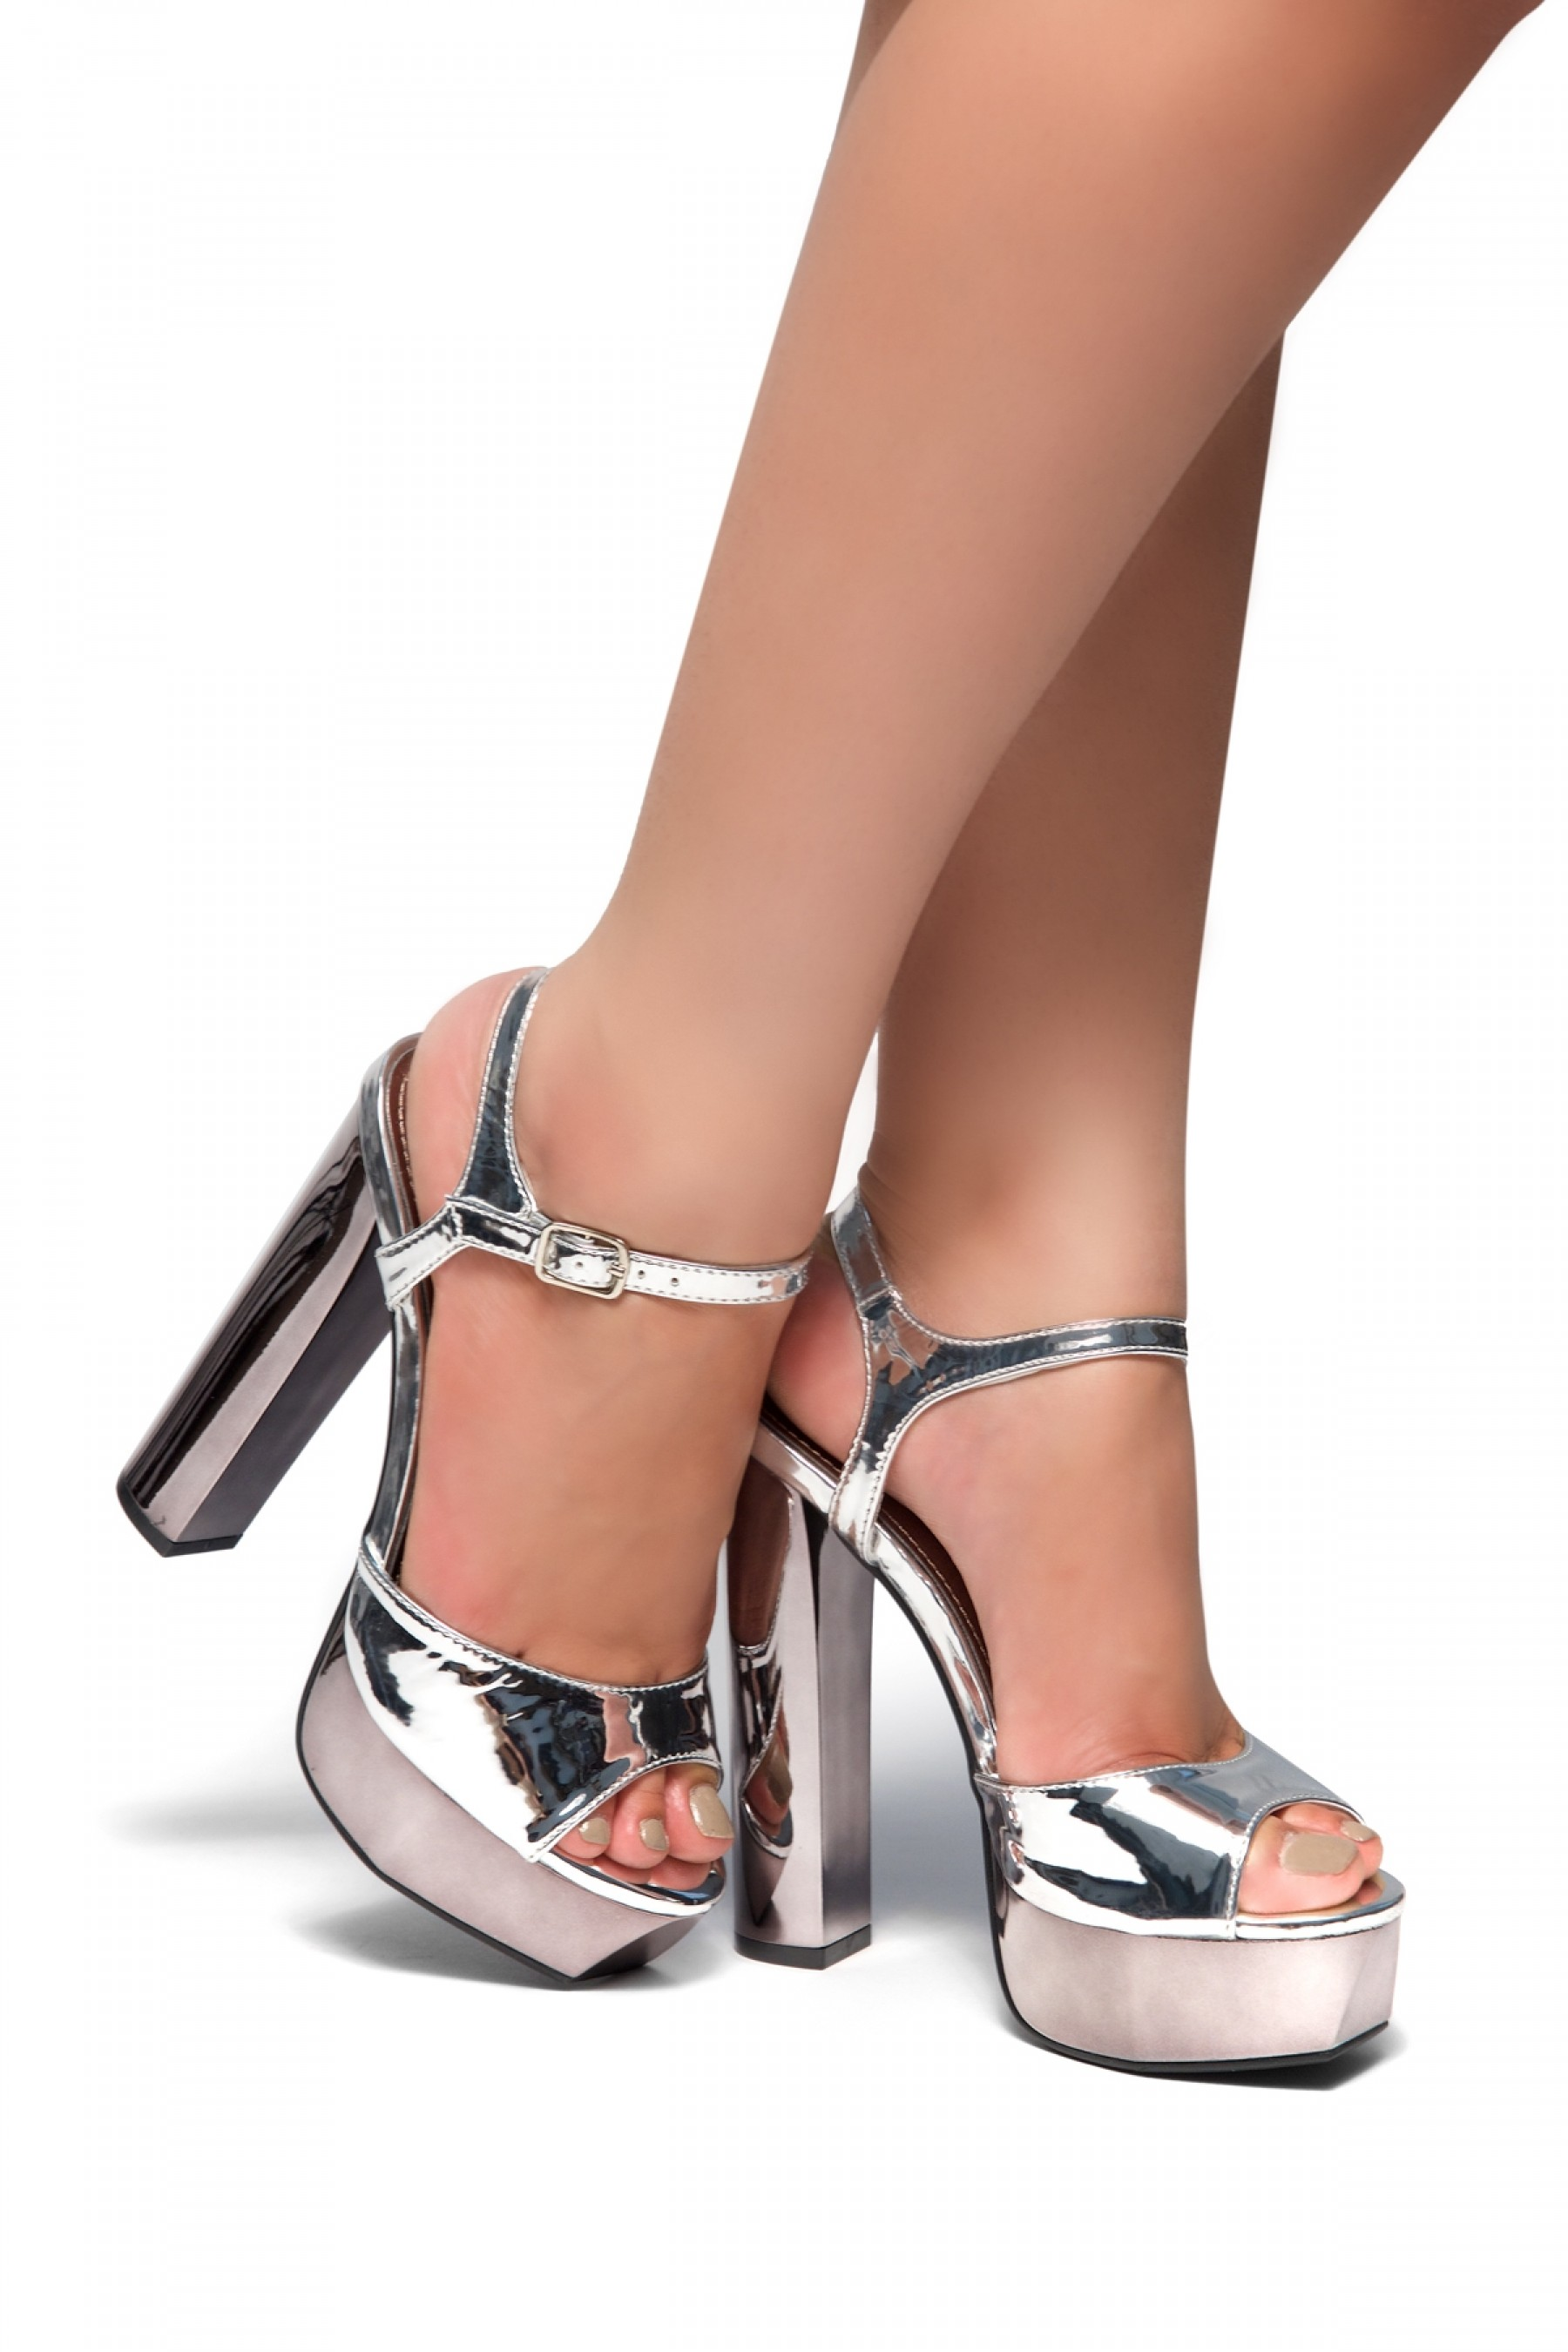 HerStyle Greetta Platform, chunky heel, ankle strap (Silver)